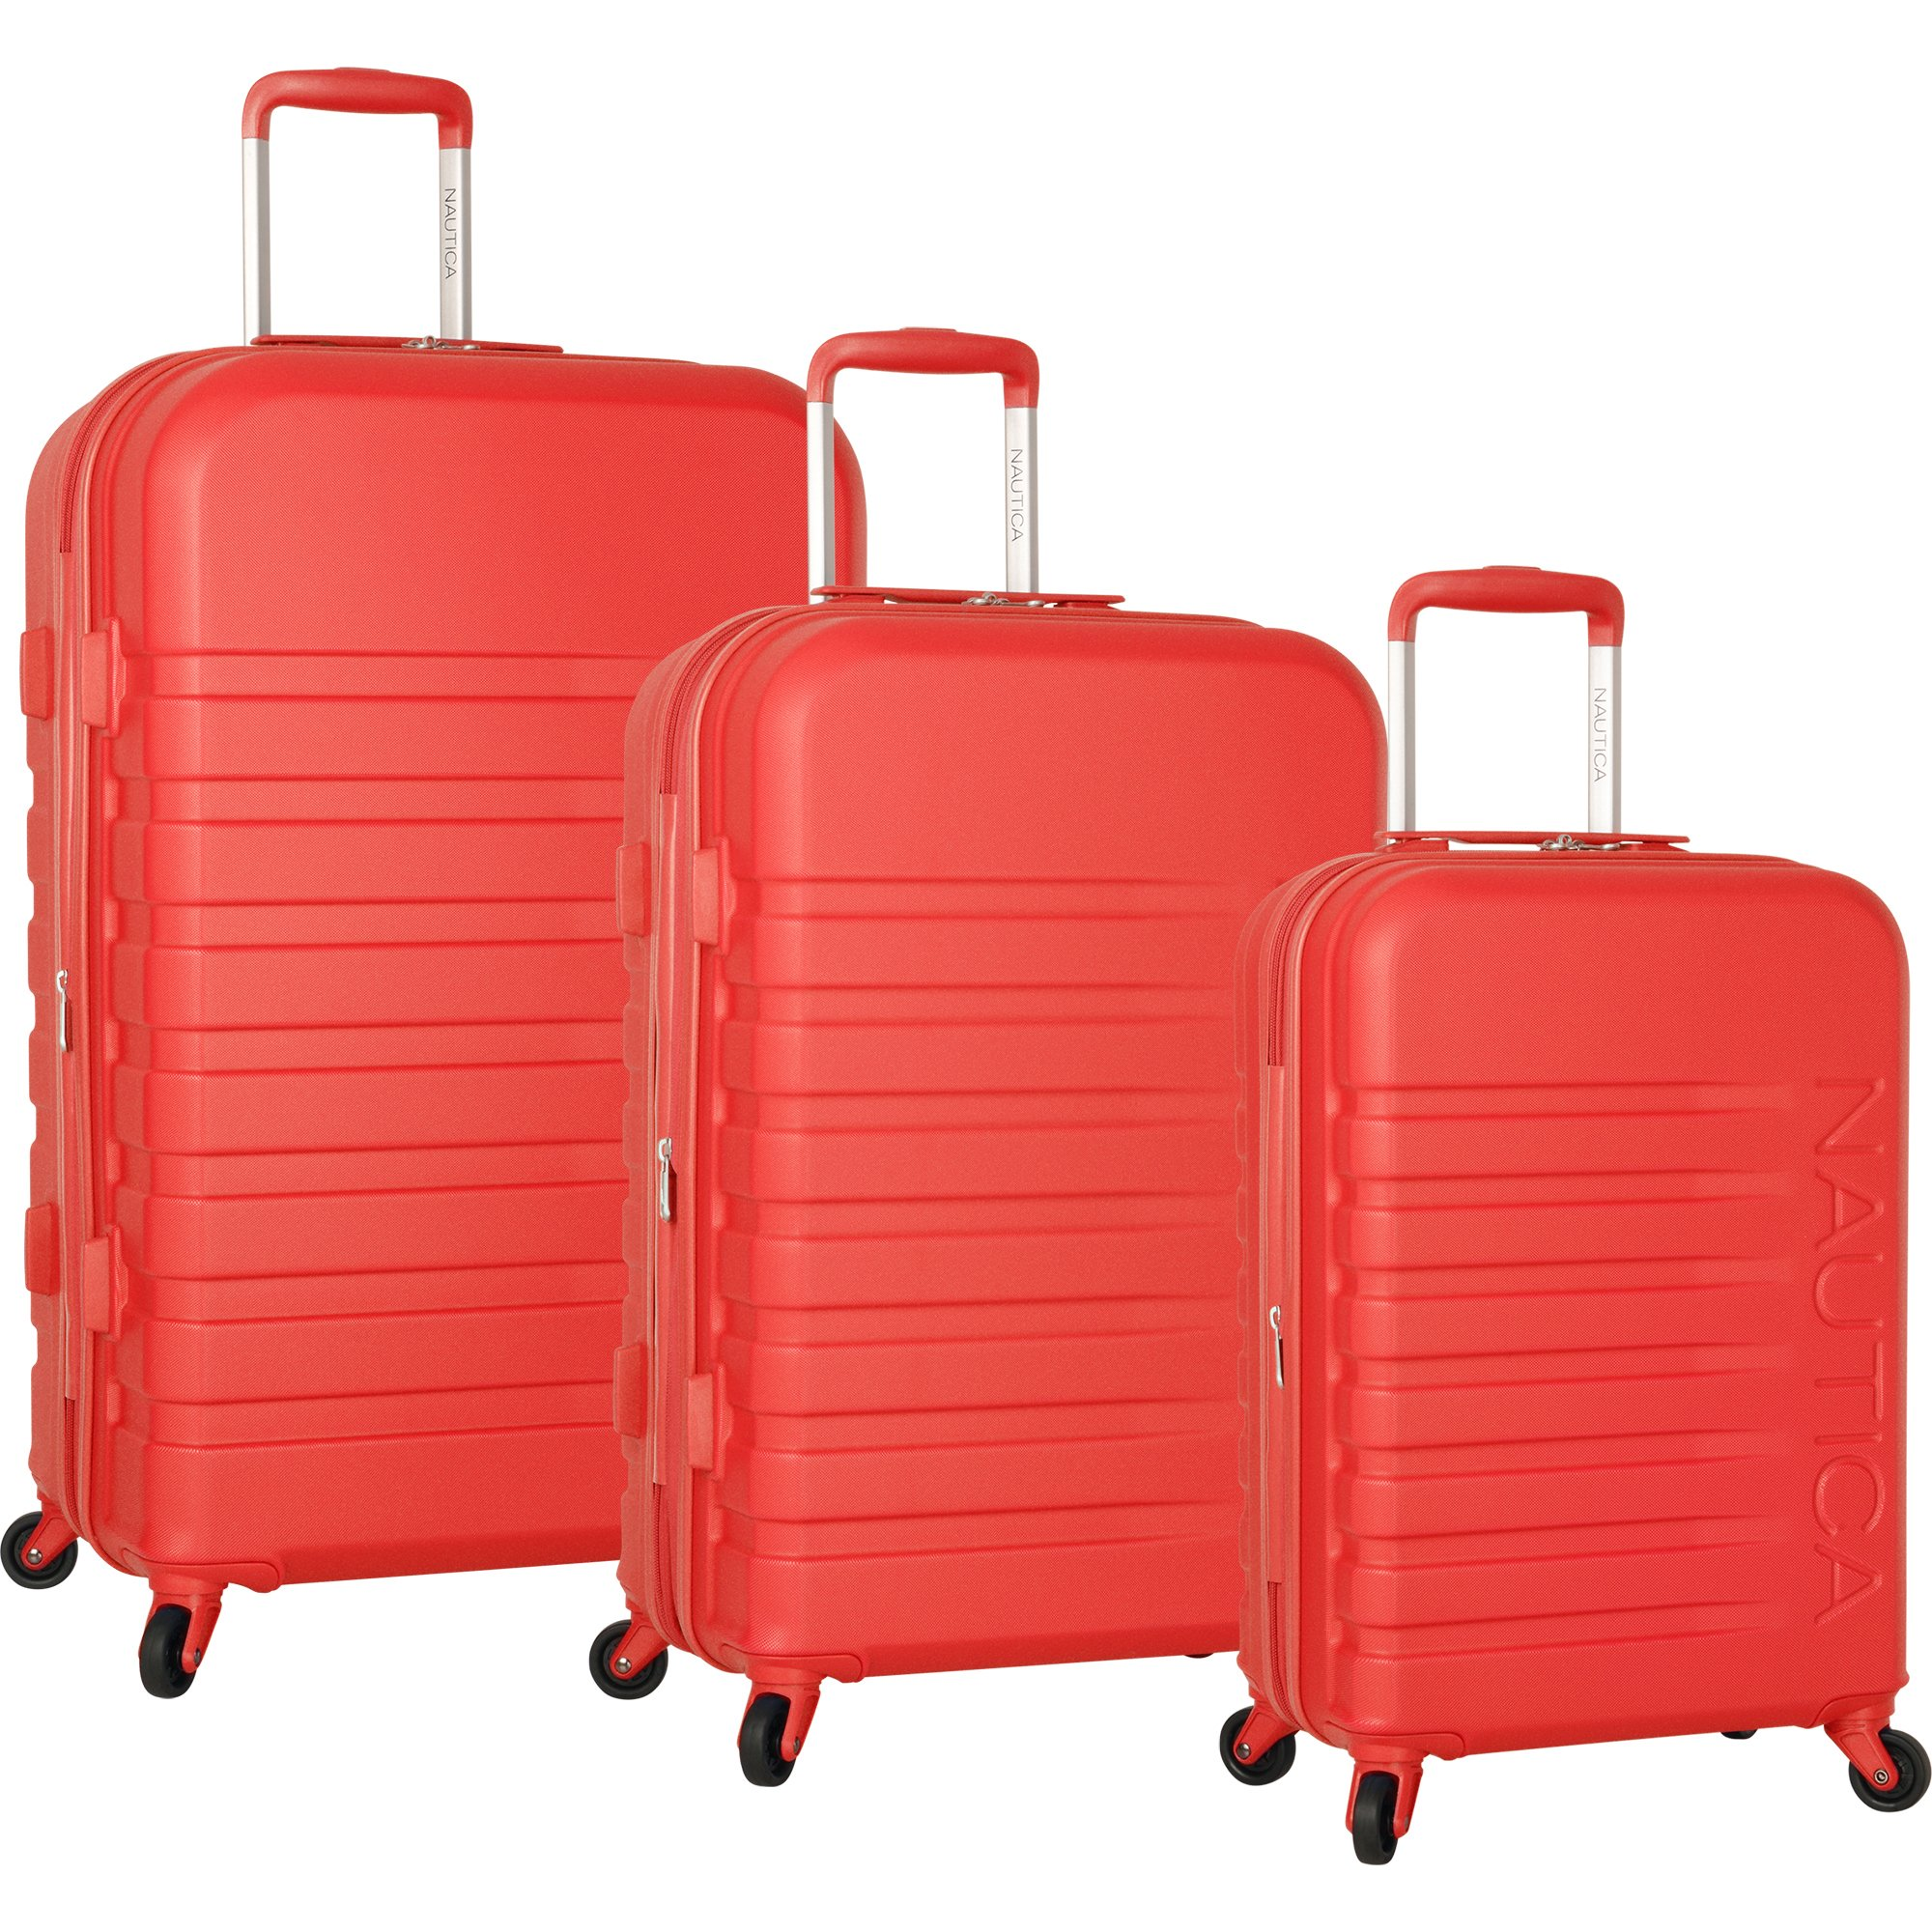 Nautica Henderson Harbor 3 Piece Hardside Expandable Suitcase Set, Cherry Red by Nautica